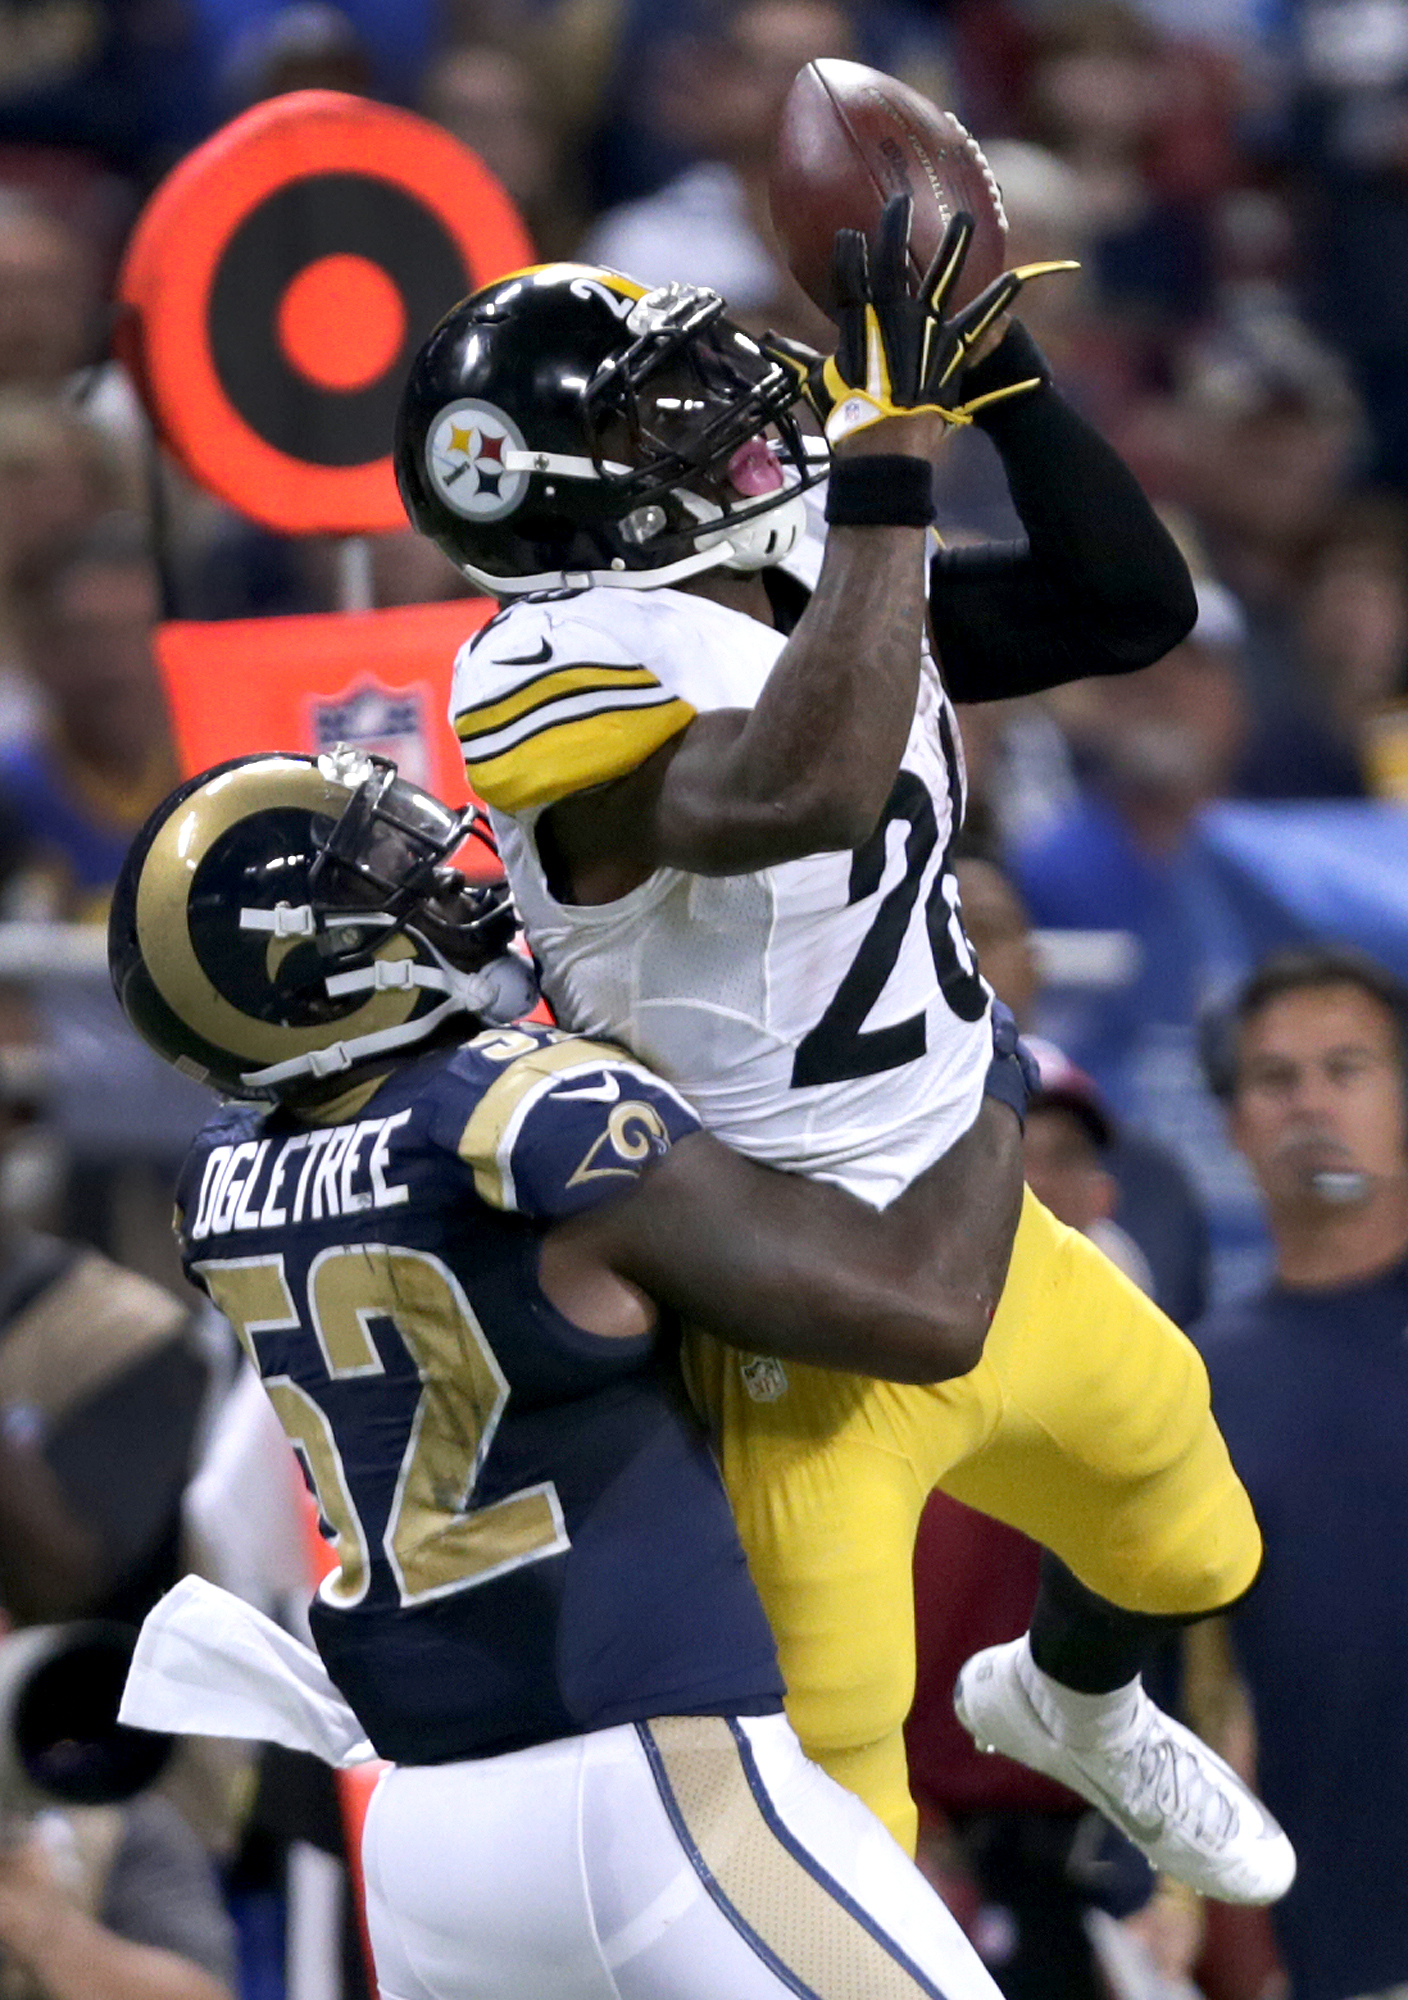 Pittsburgh Steelers running back Le'Veon Bell catches a pass for a 20-yard gain as St. Louis Rams linebacker Alec Ogletree defends during the third quarter of an NFL football game Sunday, Sept. 27, 2015, in St. Louis. (AP Photo/Tom Gannam)